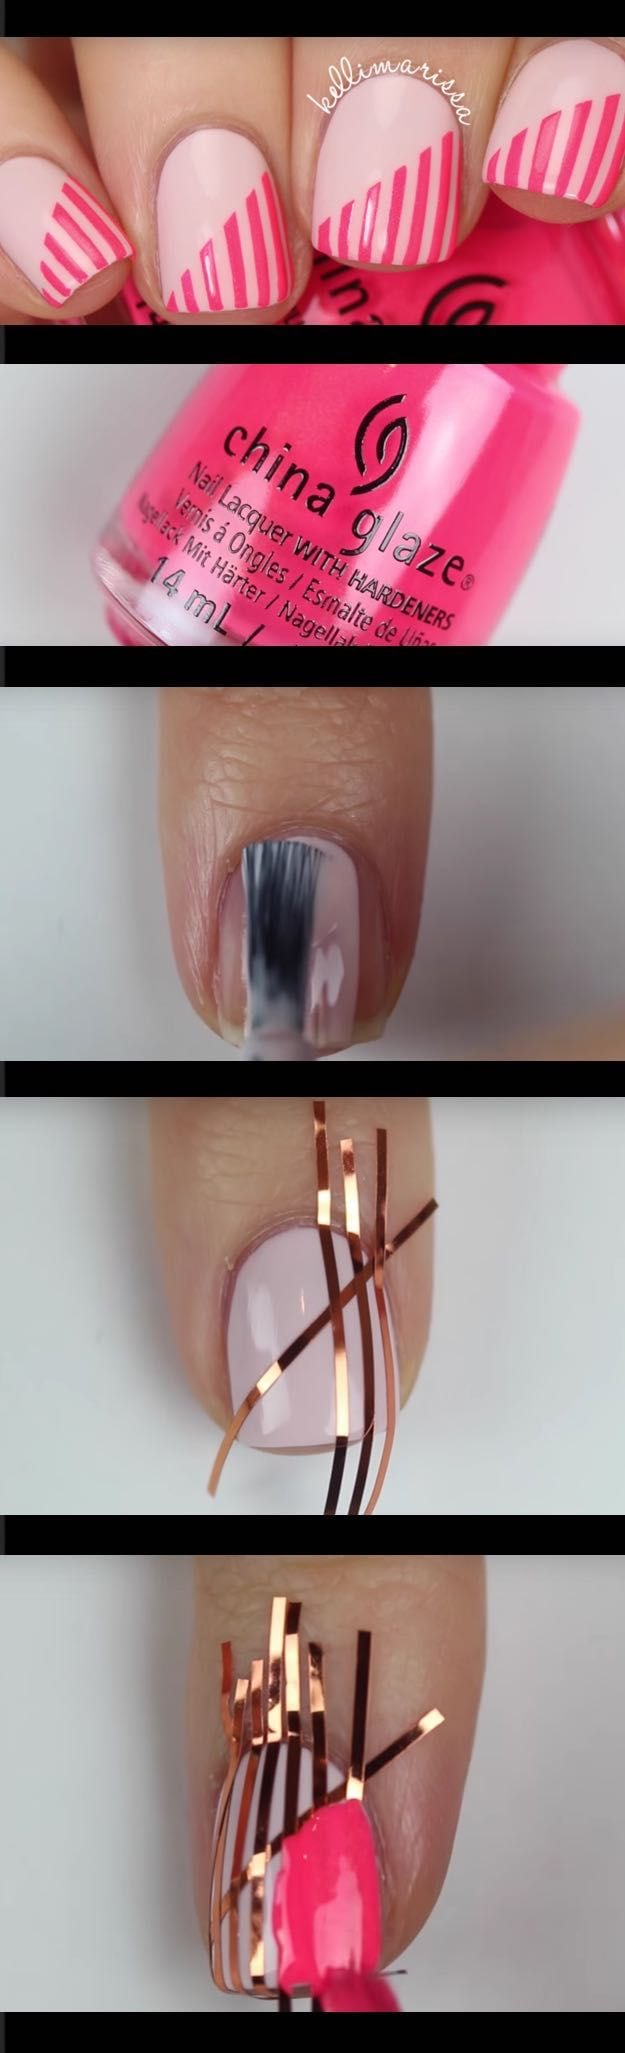 [ad_1]  Super Easy Nail Art Ideas for Beginners – DIY Beginner Striping Tape Nail Art Tutorial KELLI MARISSA – Simple Step By Step DIY Tutorials And Pictures For Nailart. Ideas For Every Style, All Hair Colors, Sparkle, Valentines, And other Awesome…